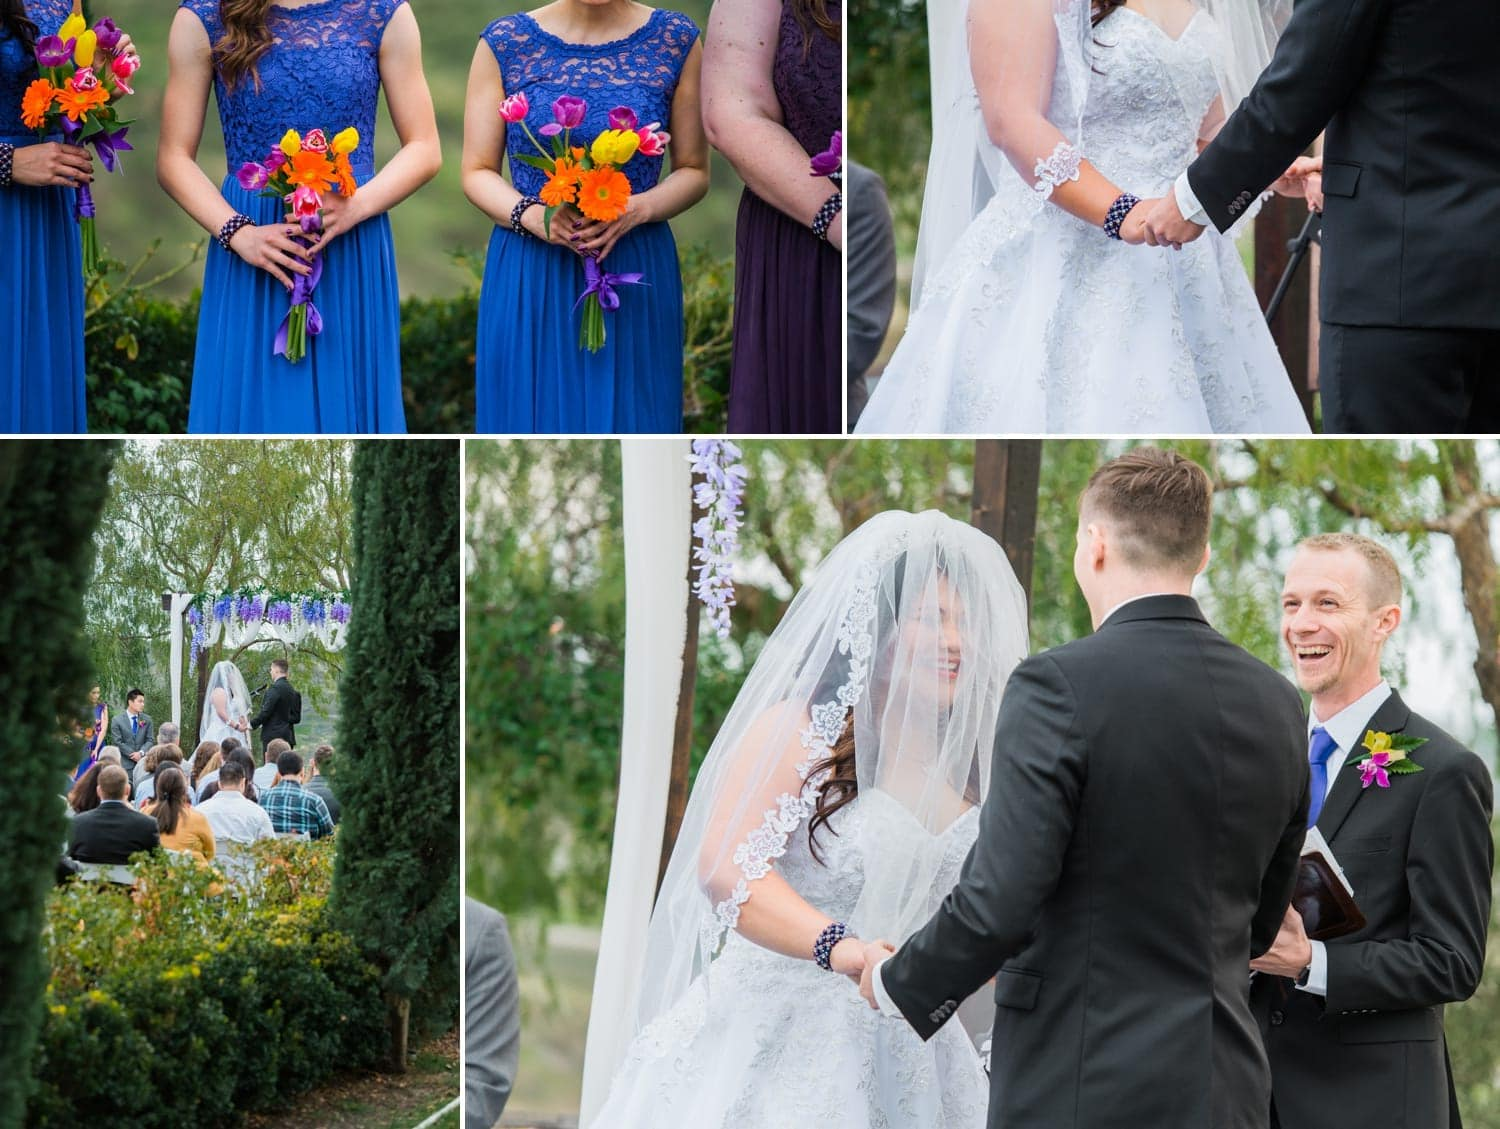 Photography from wedding ceremony at Falkner Winery.